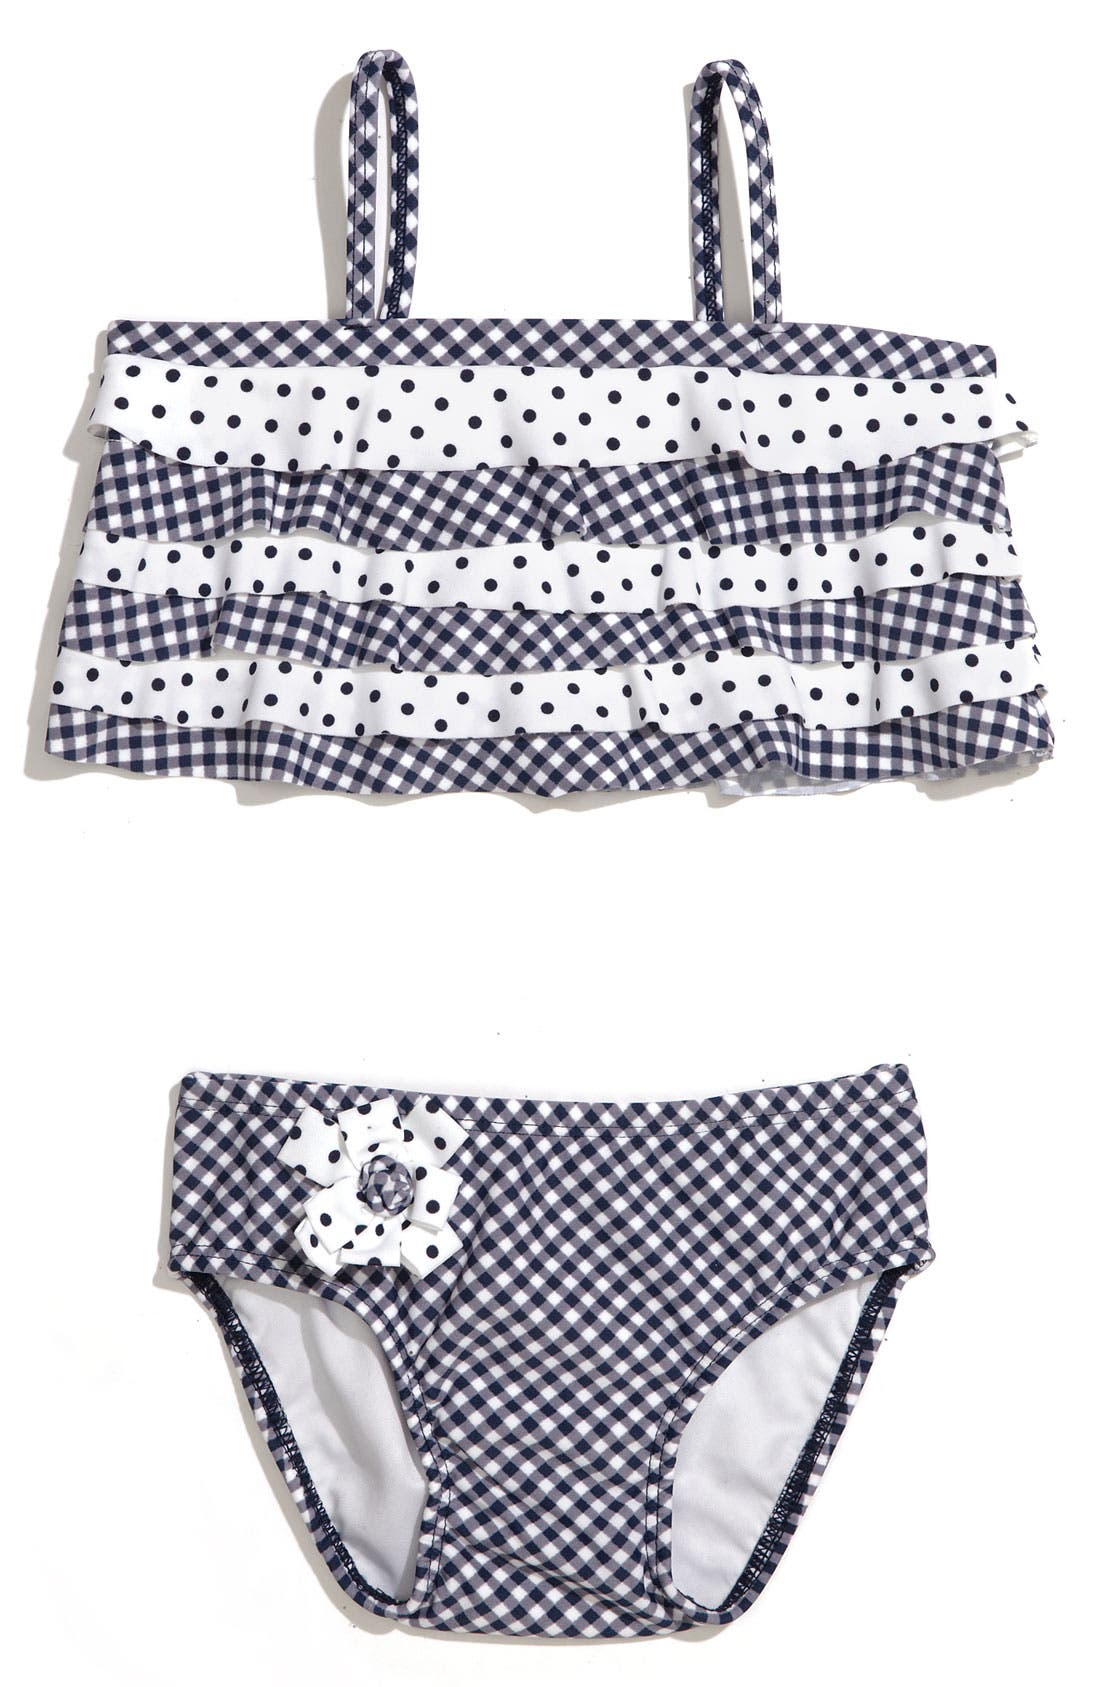 Alternate Image 1 Selected - Kate Mack 'Picnic Sail' Two Piece Swimsuit (Infant)